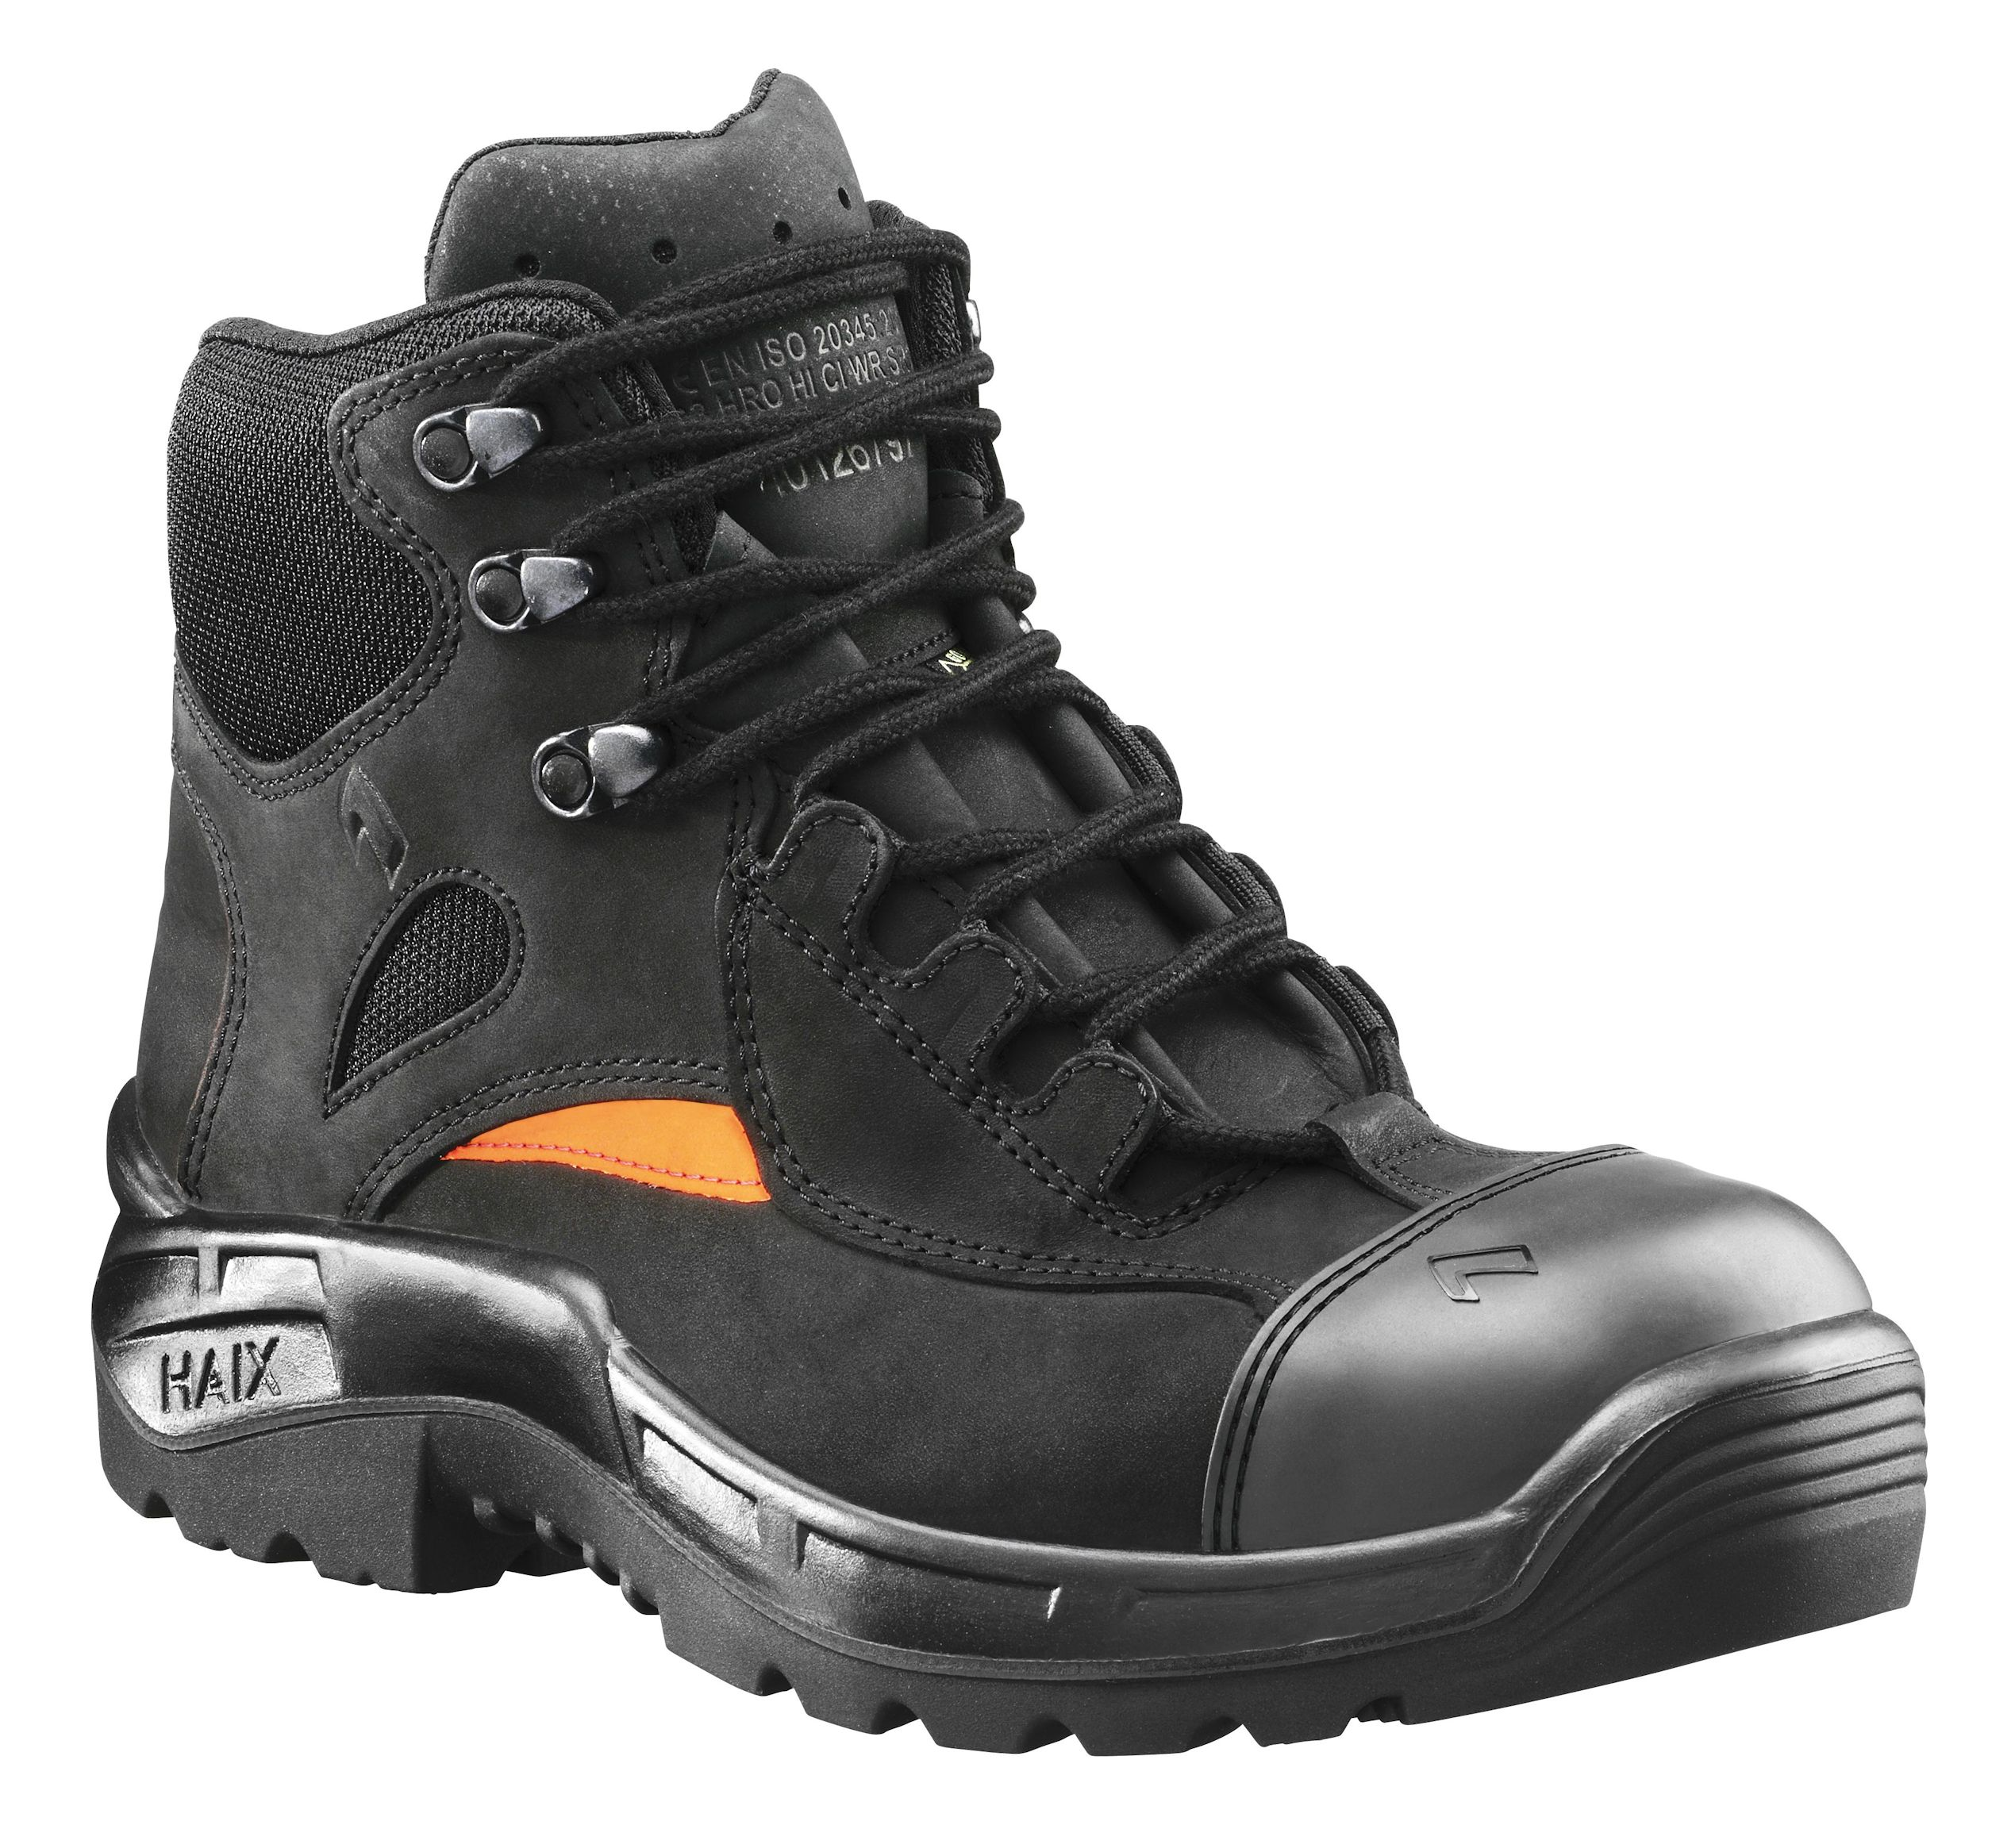 haix airpower r23 mid s3 gore tex safety work boot ebay. Black Bedroom Furniture Sets. Home Design Ideas